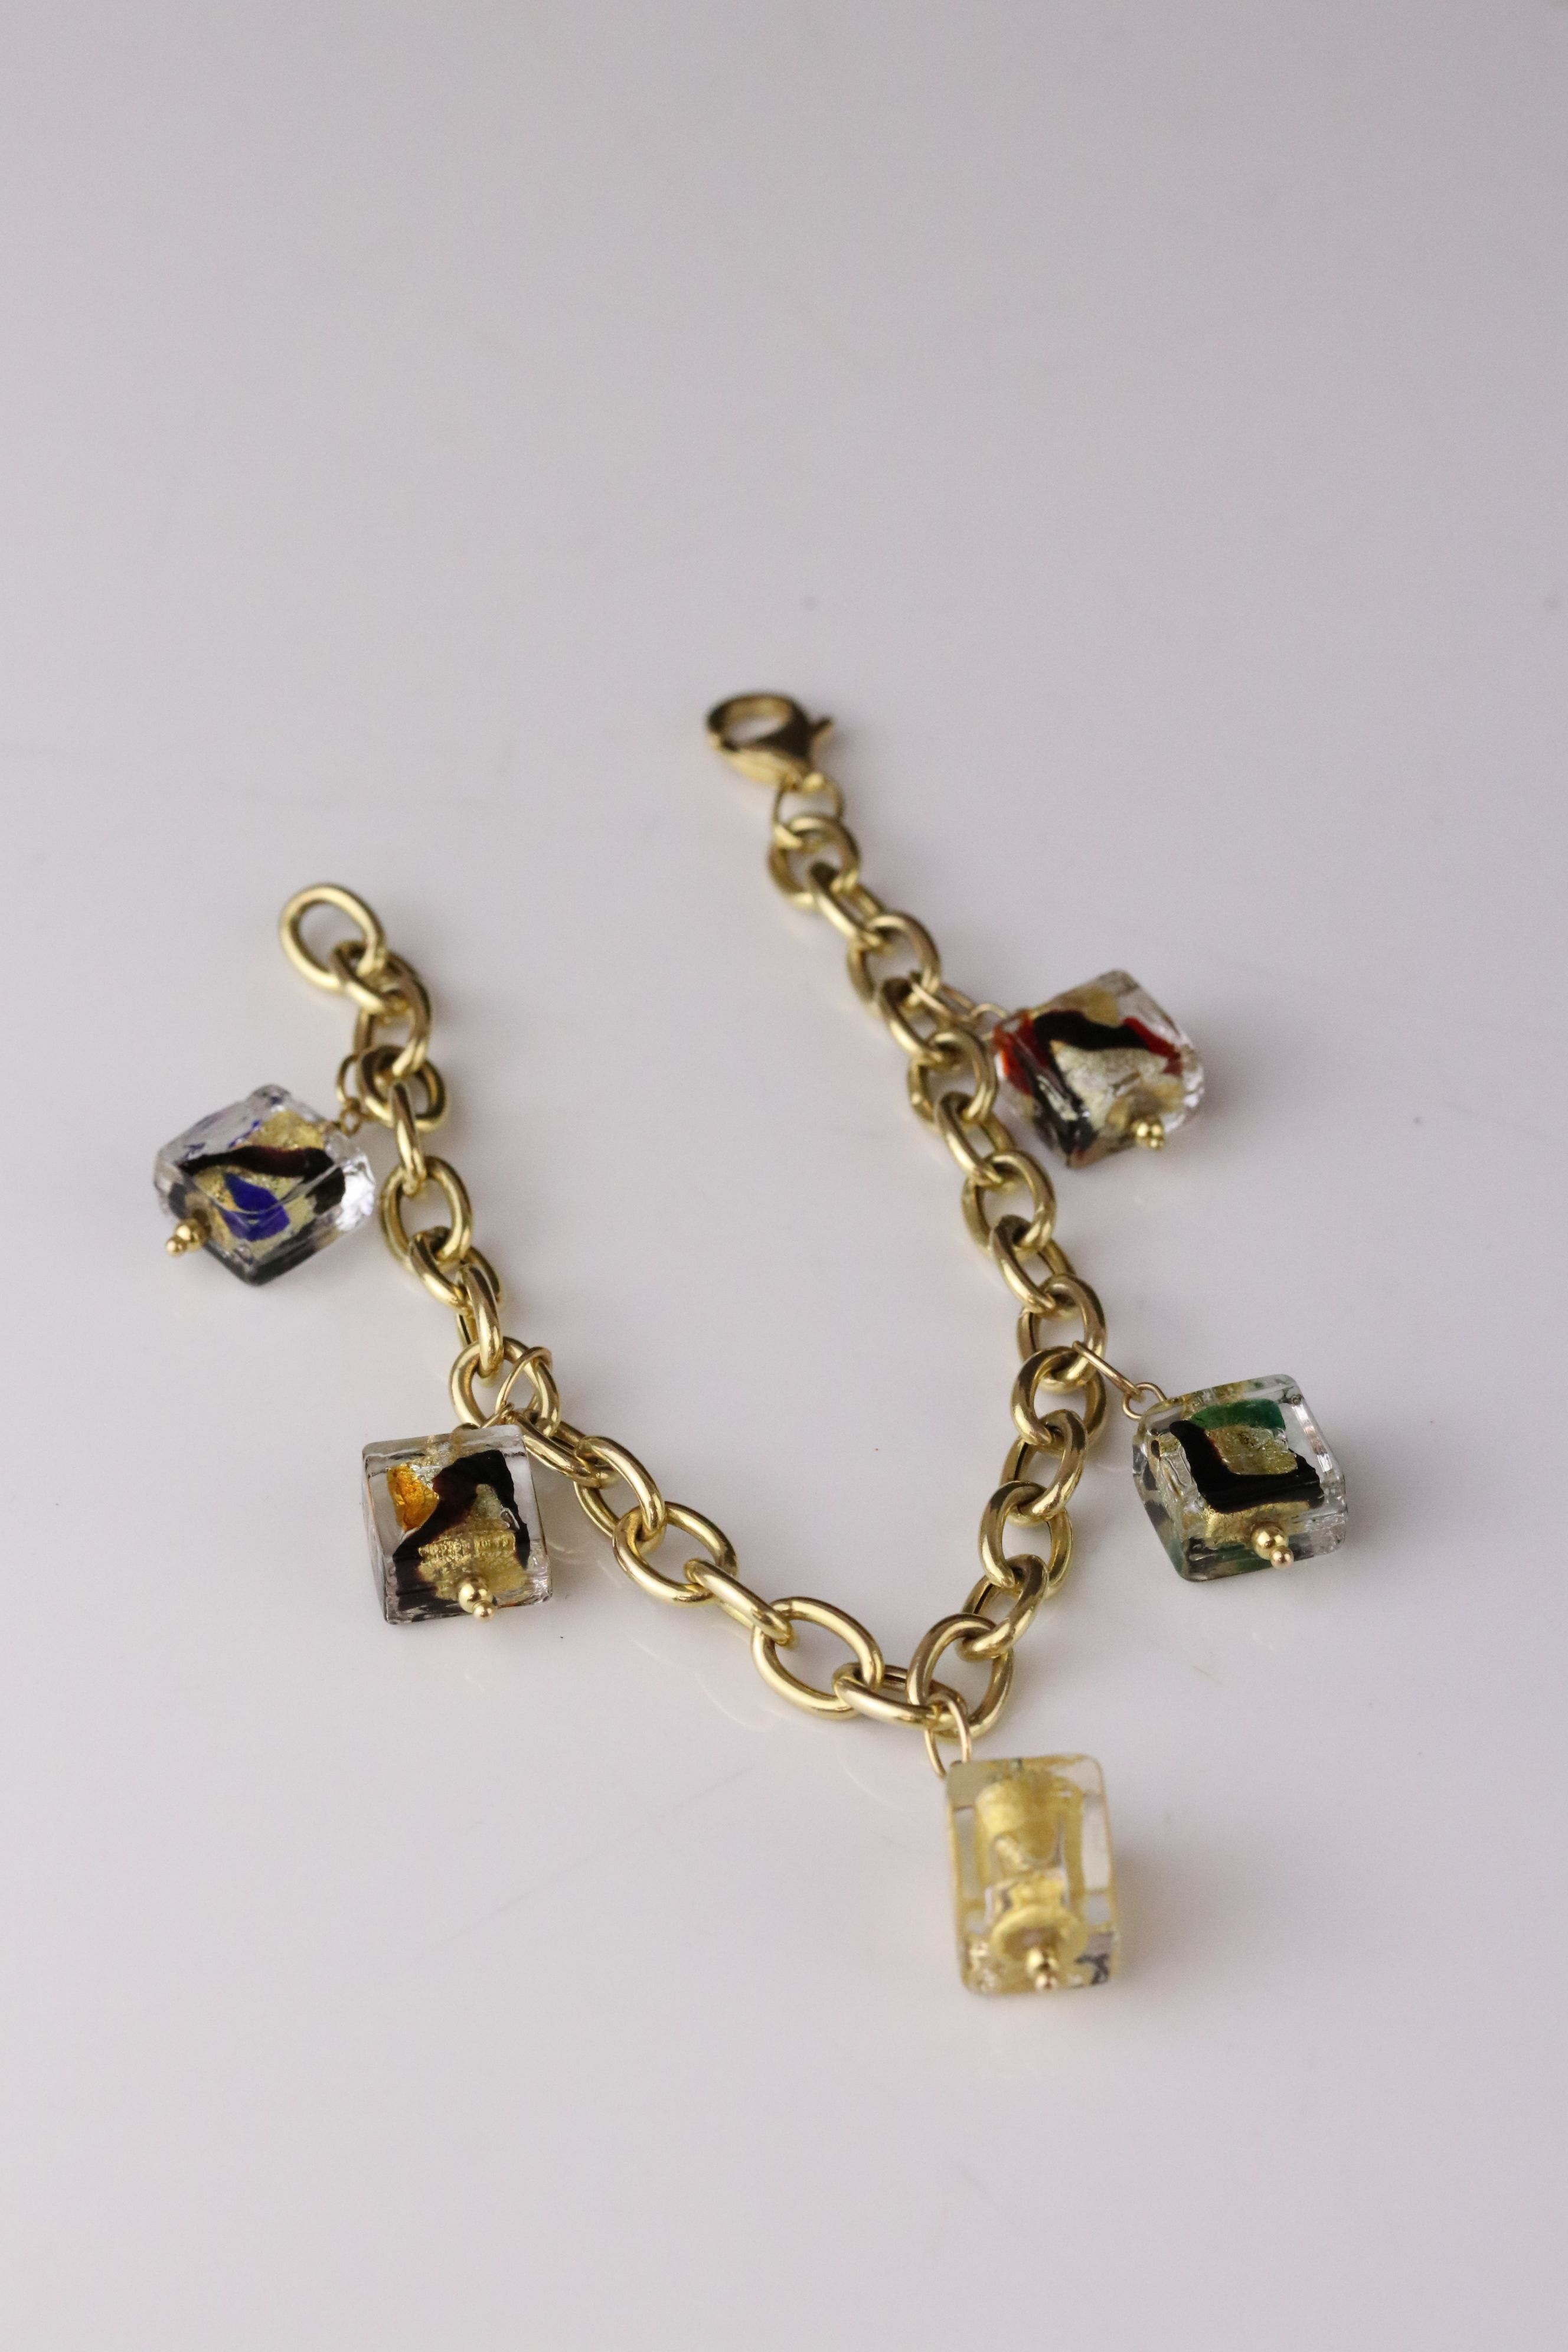 14ct yellow gold charm bracelet with five Murano style glass charms, lobster clasp, length approx